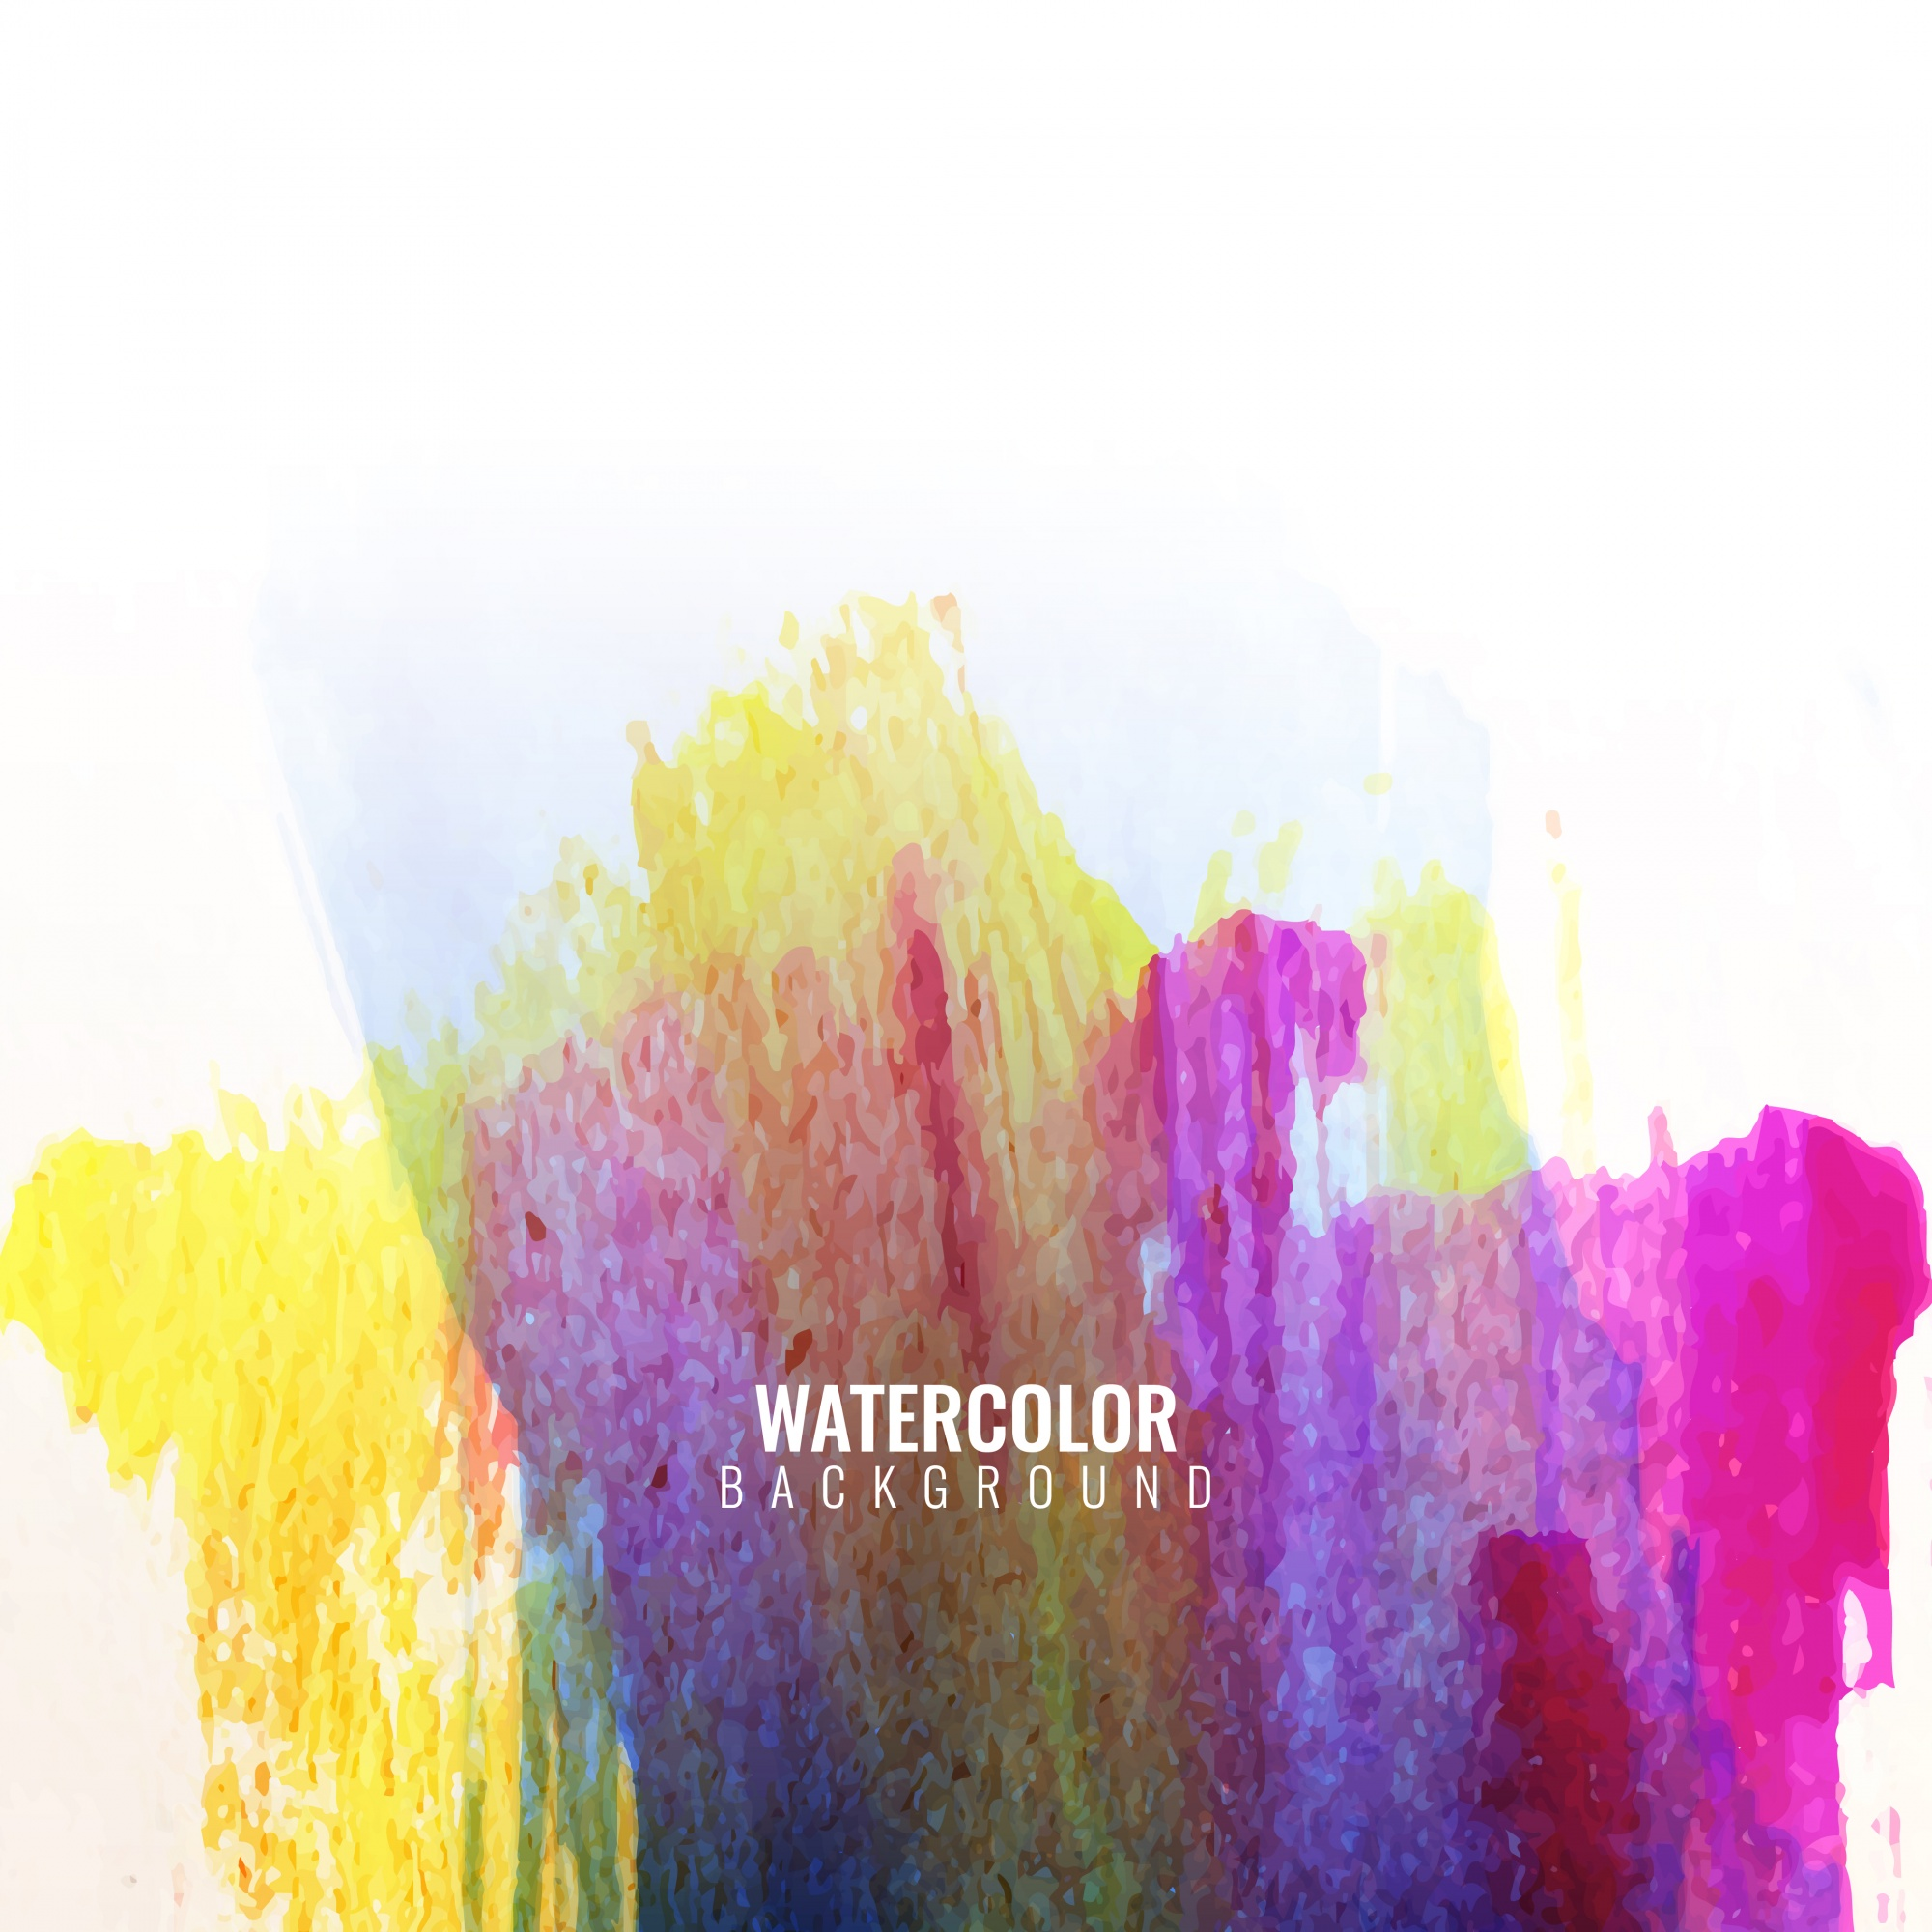 Watercolor strokes in full color